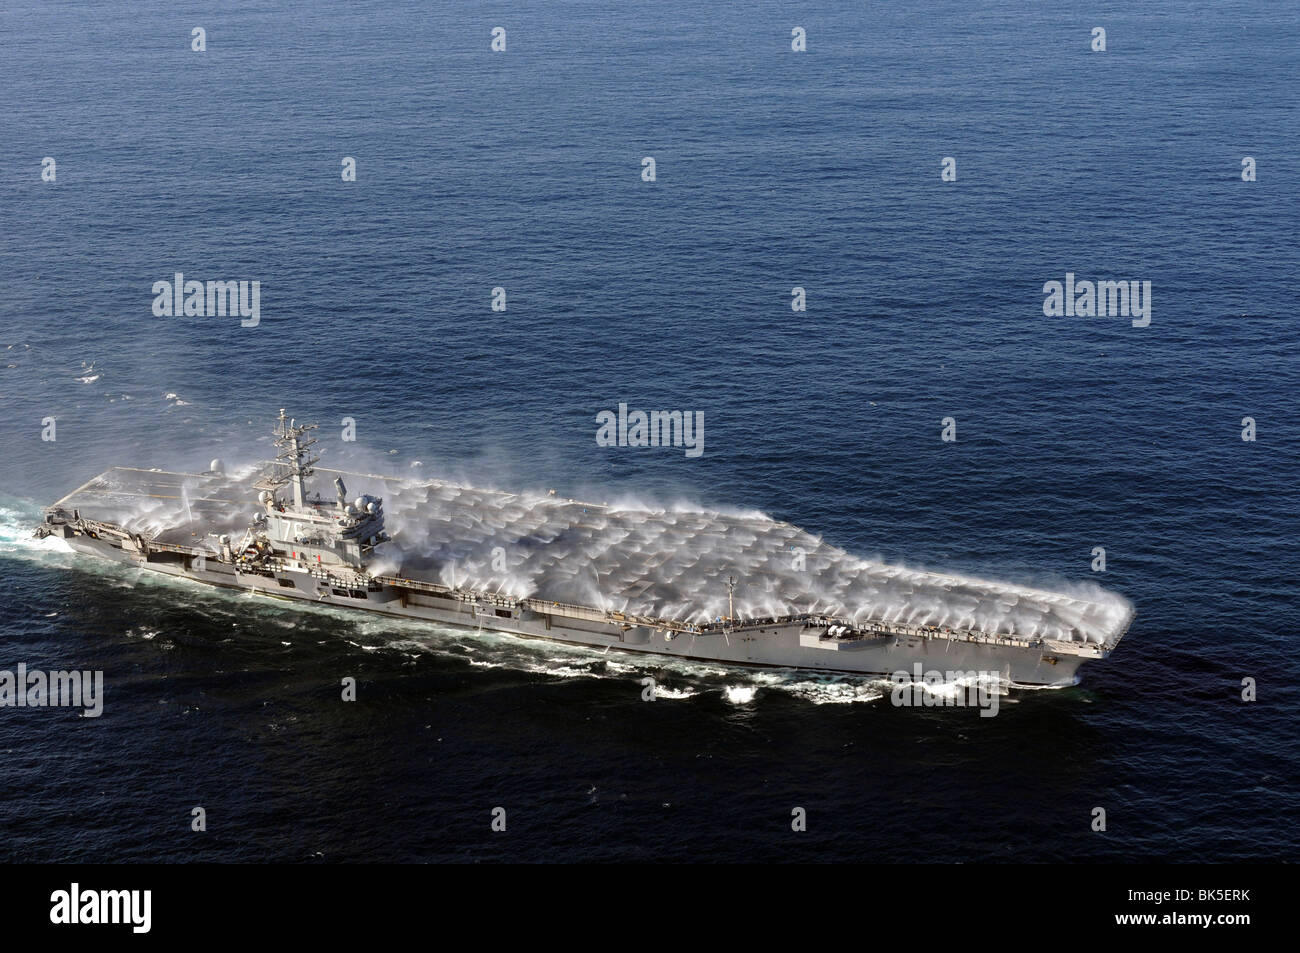 Countermeasure wash down sprinklers are activated as the Nimitz-class aircraft carrier USS Ronald Reagan (CVN-76) - Stock Image